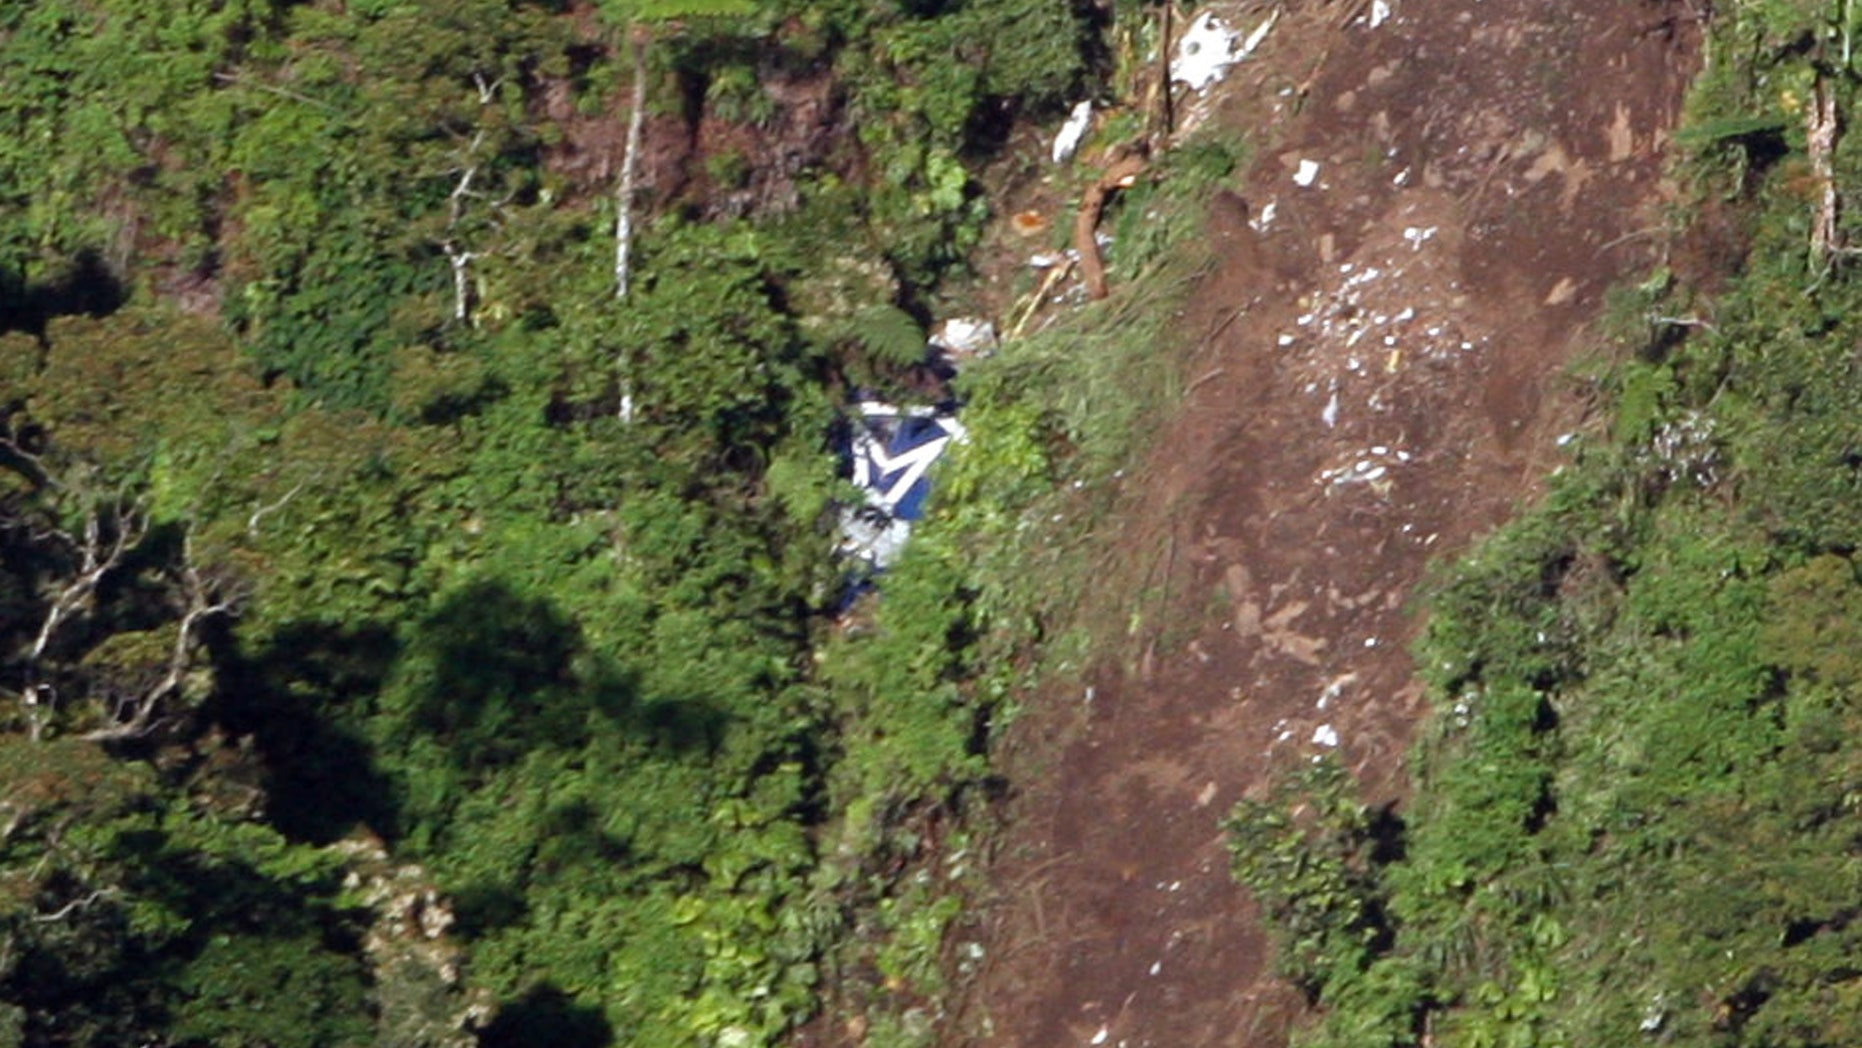 May 11, 2012: The logo of Sukhoi Co. is clearly visible, center, among the wreckage of a Sukhoi Superjet-100 scattered on the mountainside in Bogor, West Java, Indonesia.